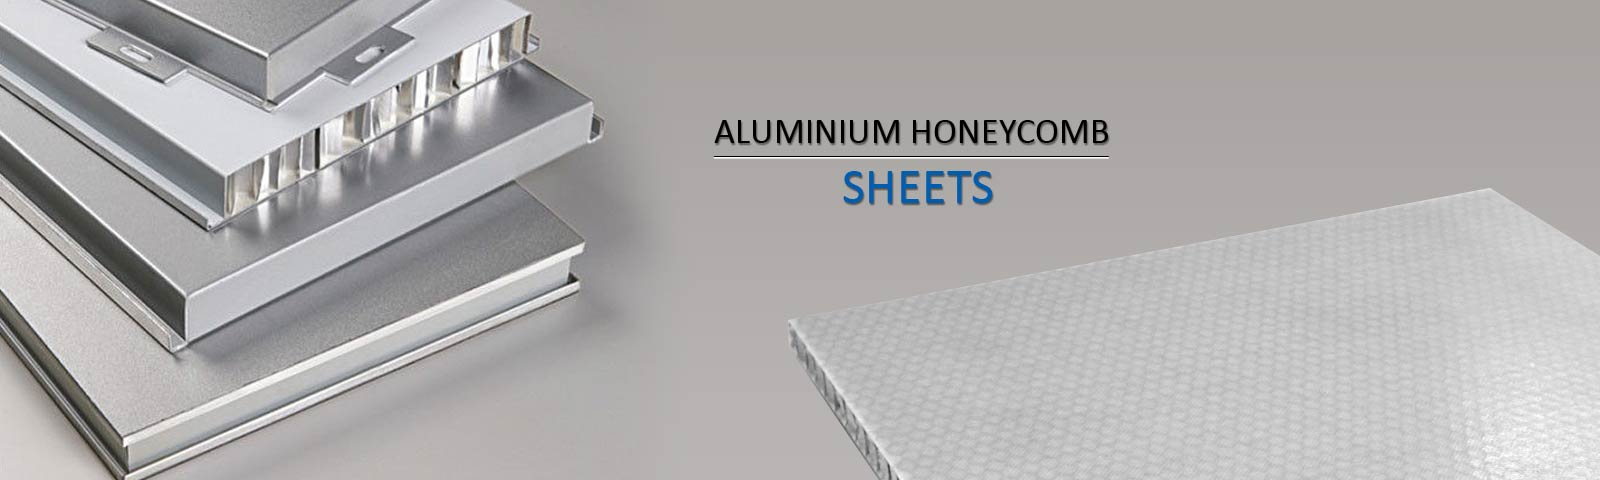 Aluminium Honeycom Sheets Manufacturer and Supplier in Chhapra